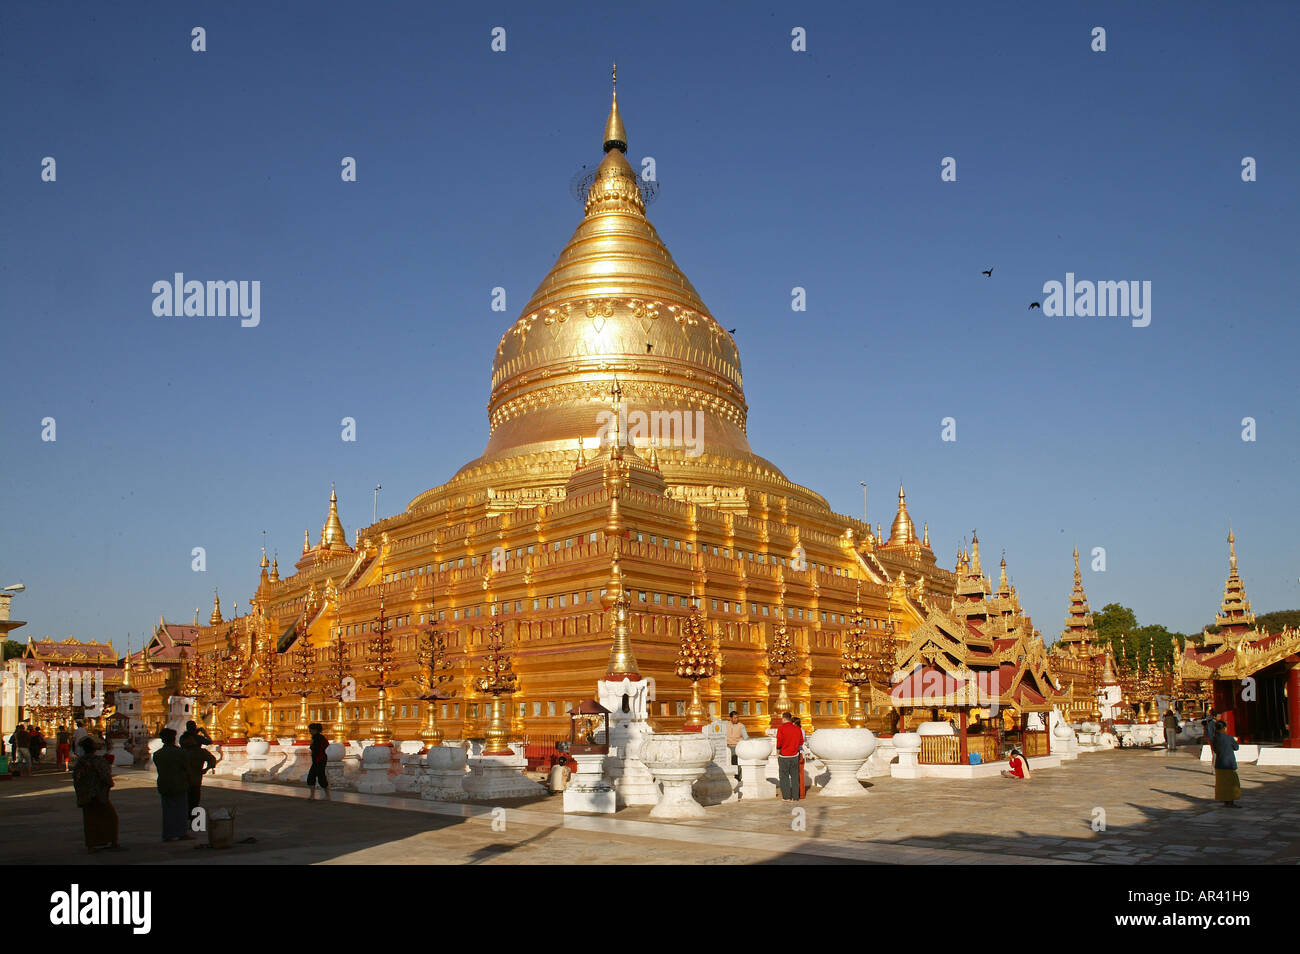 Golden Shwezigon Pagoda in Bagan finished in 1090, contains relics of Buddha, Myanmar - Stock Image